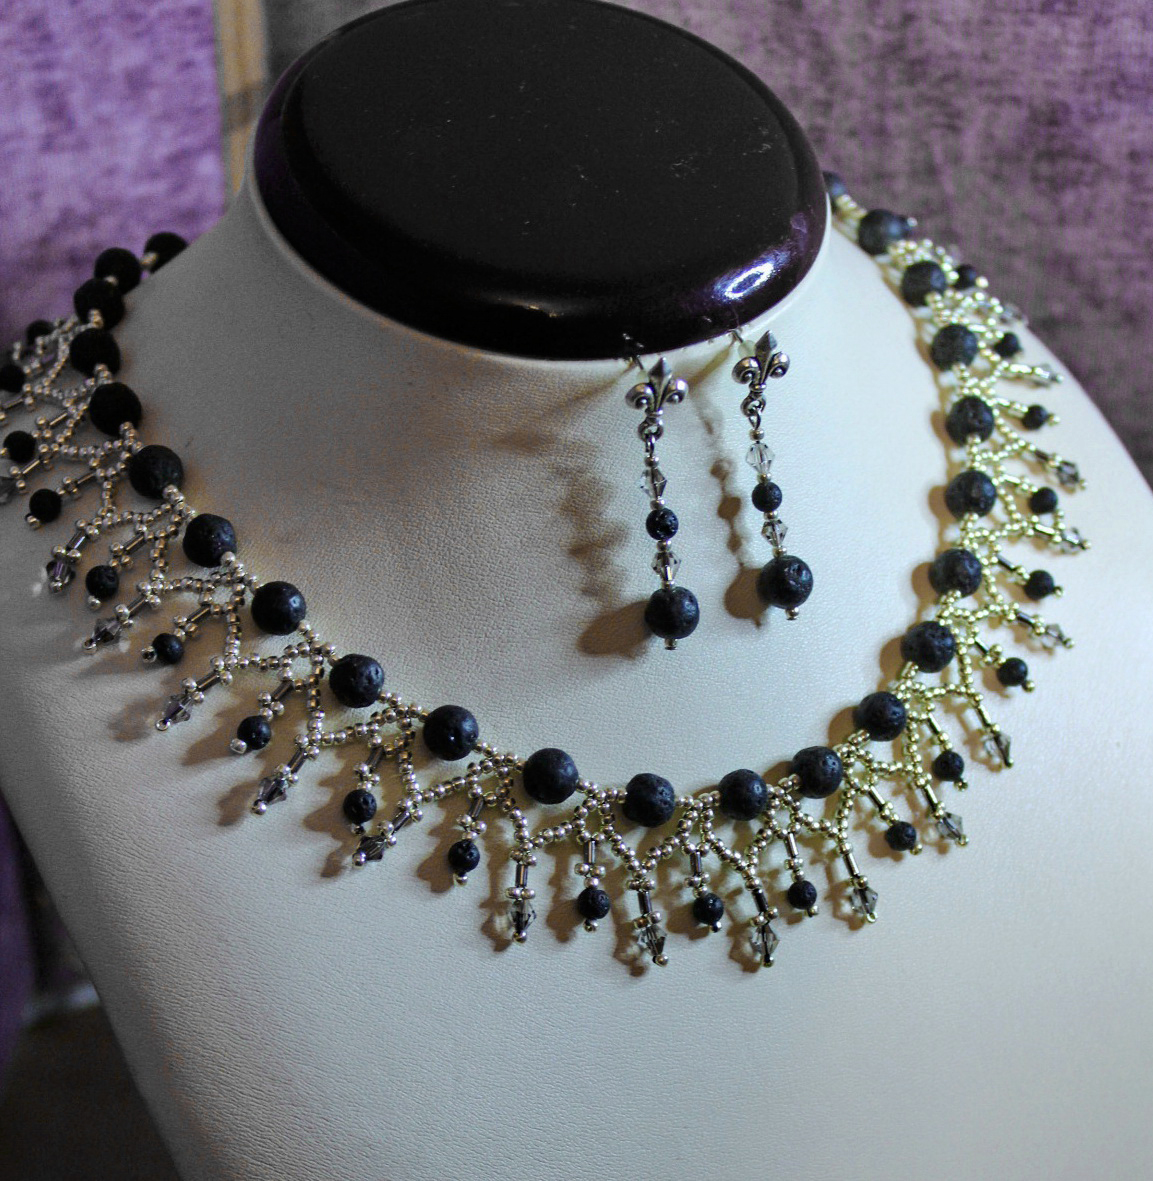 free-beading-necklace-tutorial-pattern-instructions-1